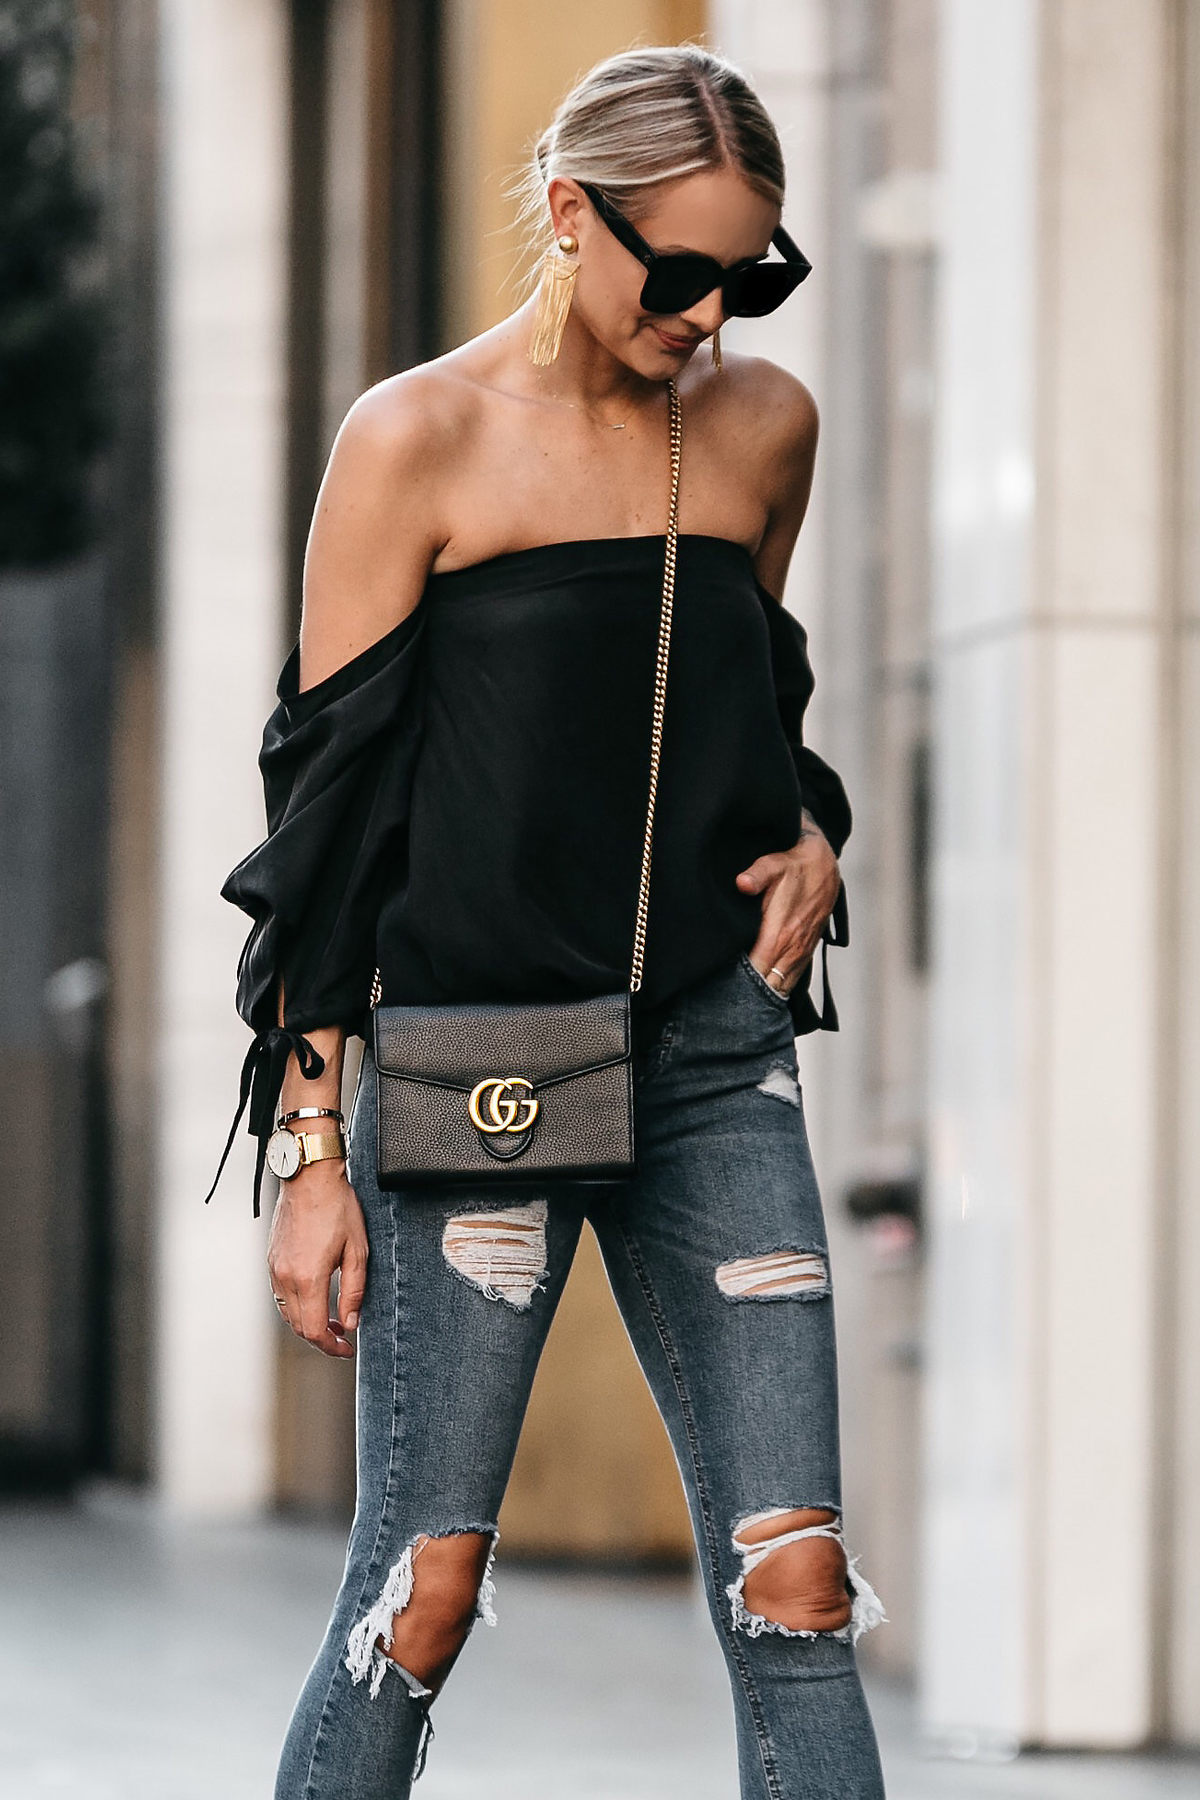 Blonde Woman Wearing Club Monaco Black Off-the-Shoulder Top Gucci Marmont Handbag Denim Ripped Skinny Jeans